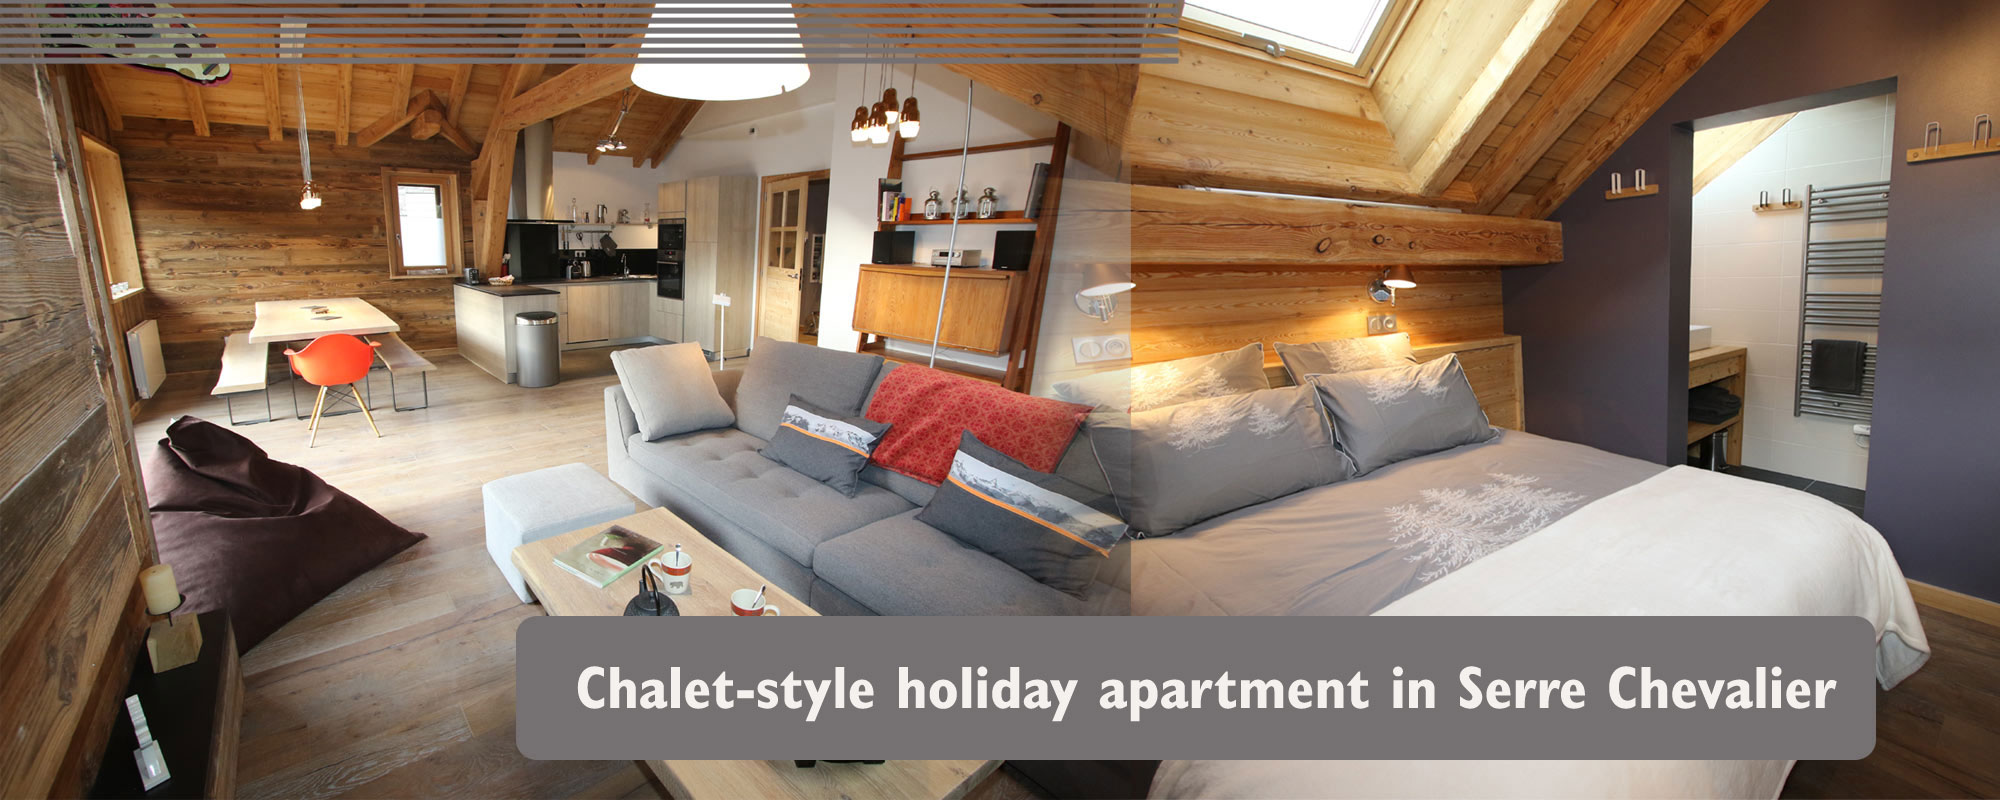 Chalet style holiday apartment in Serre Chevalier